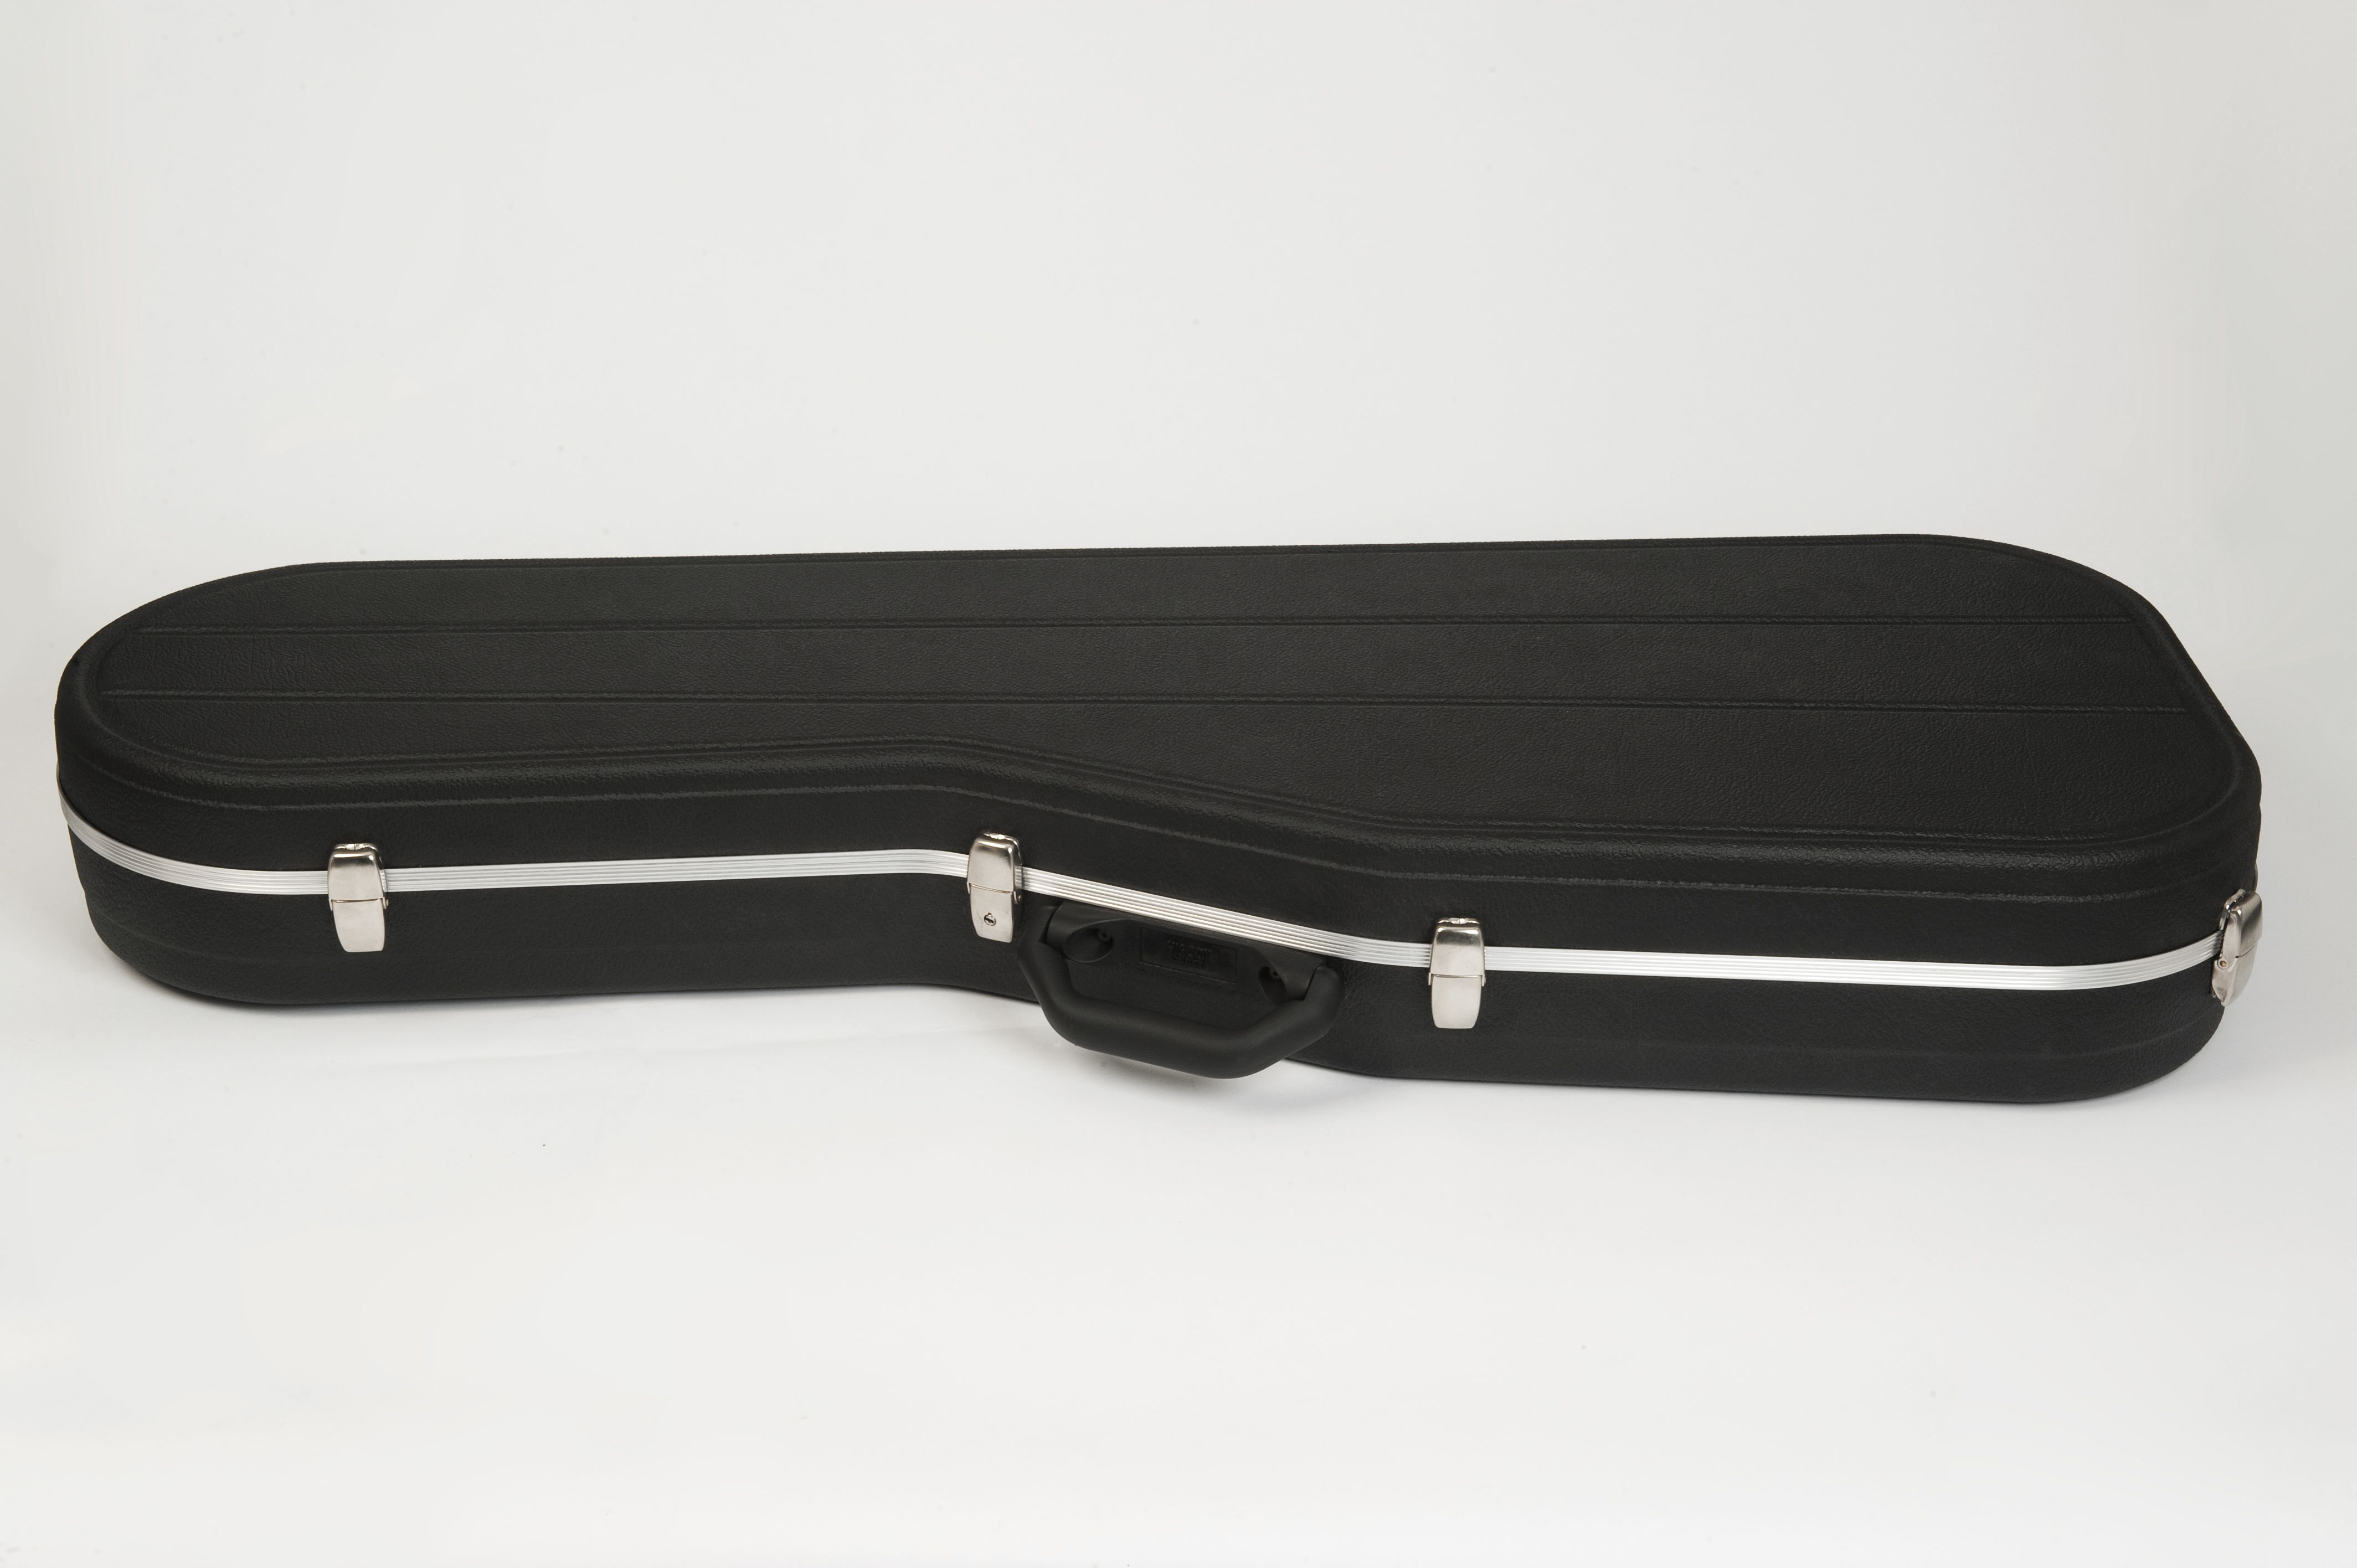 3f051001914 Hiscox Case, Electric guitar case. Gibson or Fender style guitars. Hard  shell case. Hiscox Cases